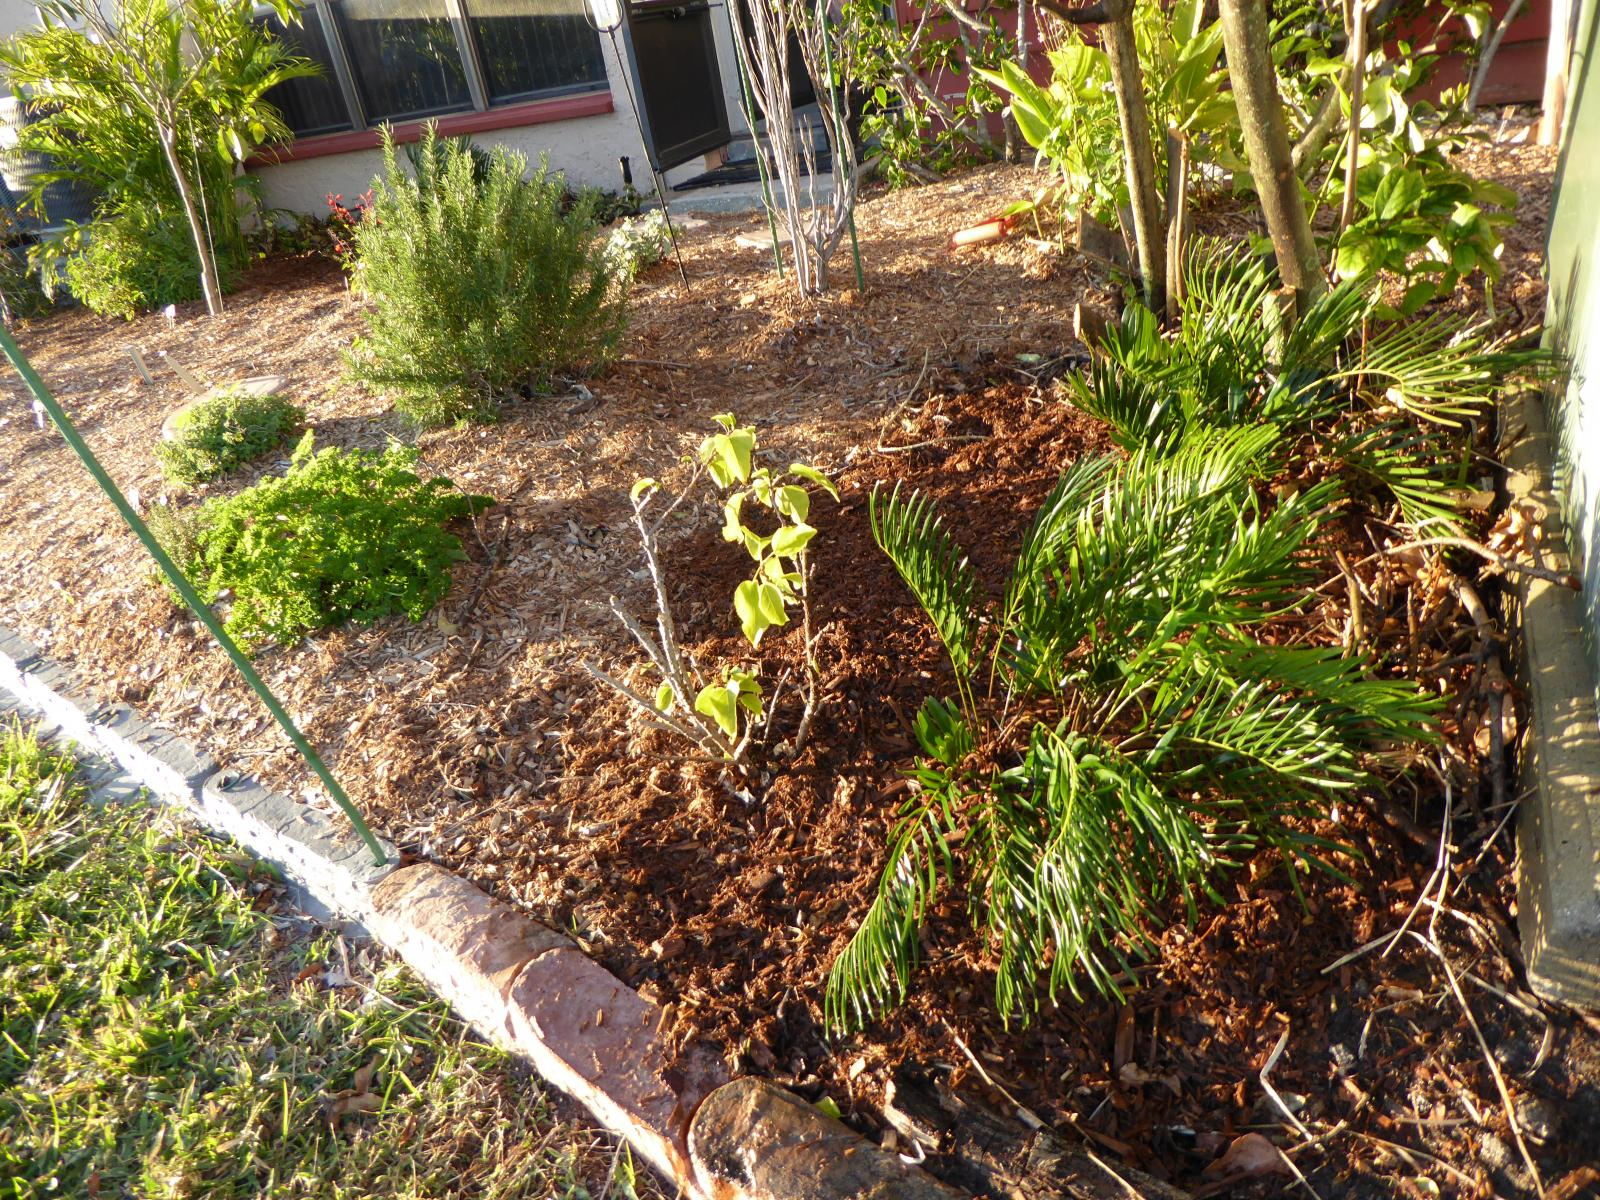 Coonties at planting, January 2016